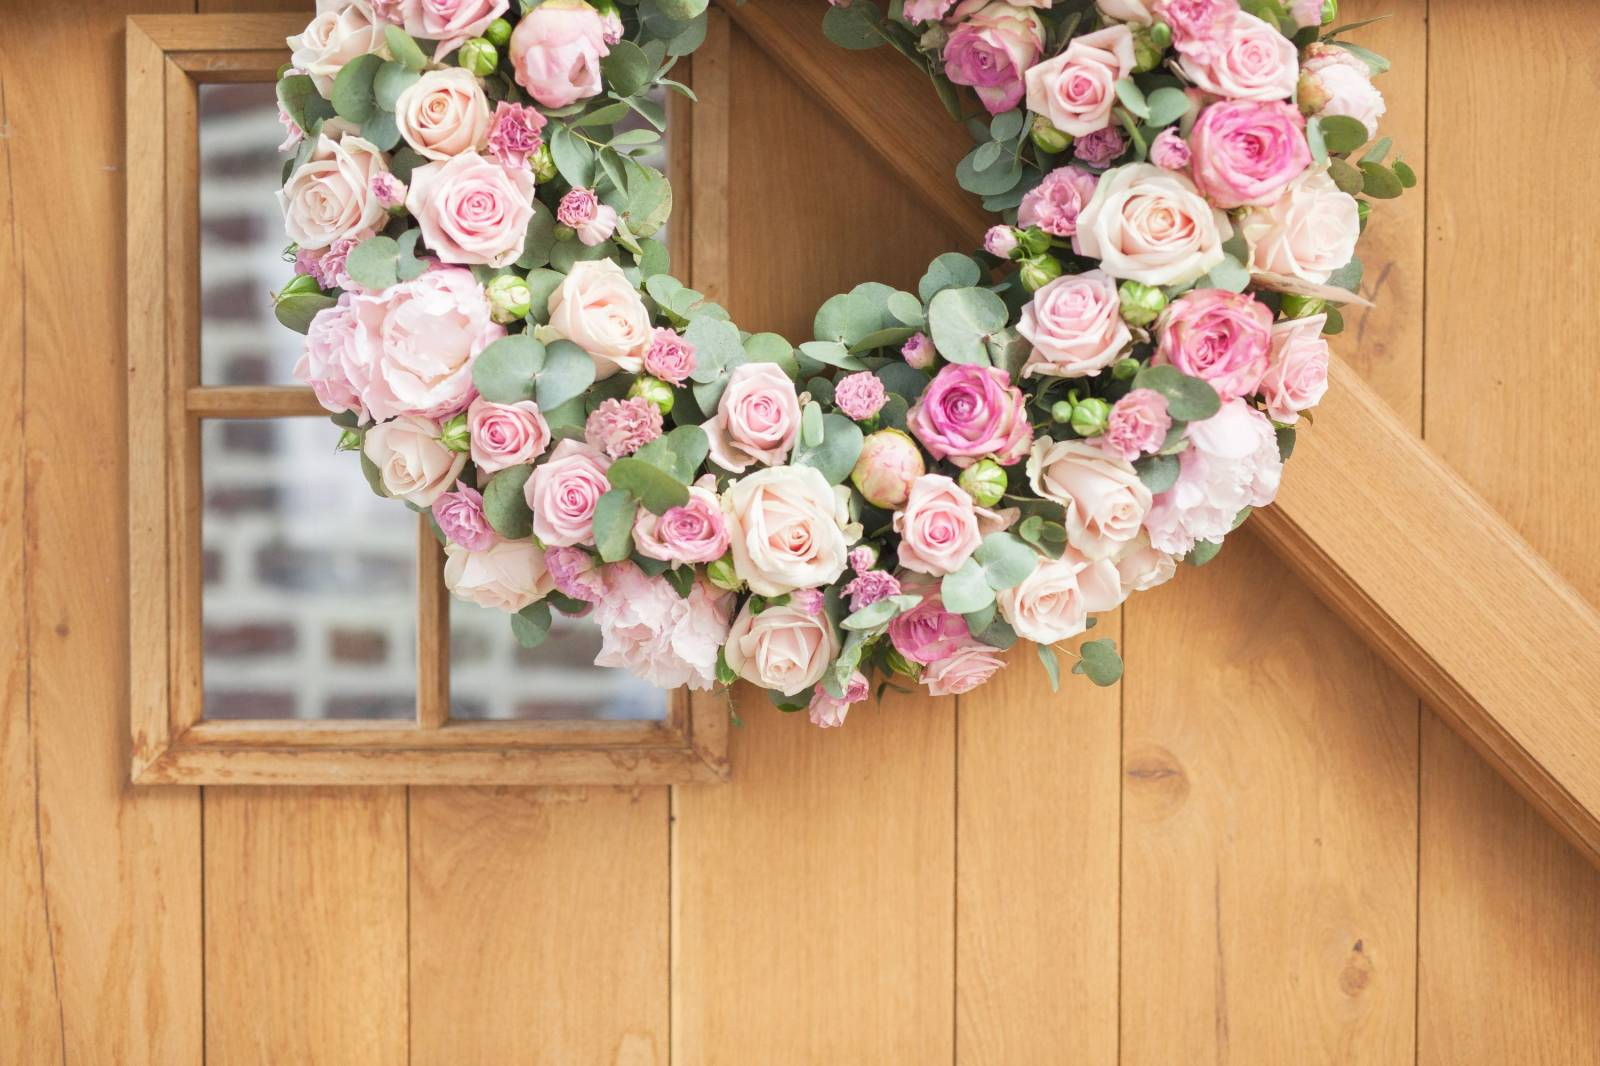 Carpe Diem Bloemen & Decoratie - House of Weddings  - 37